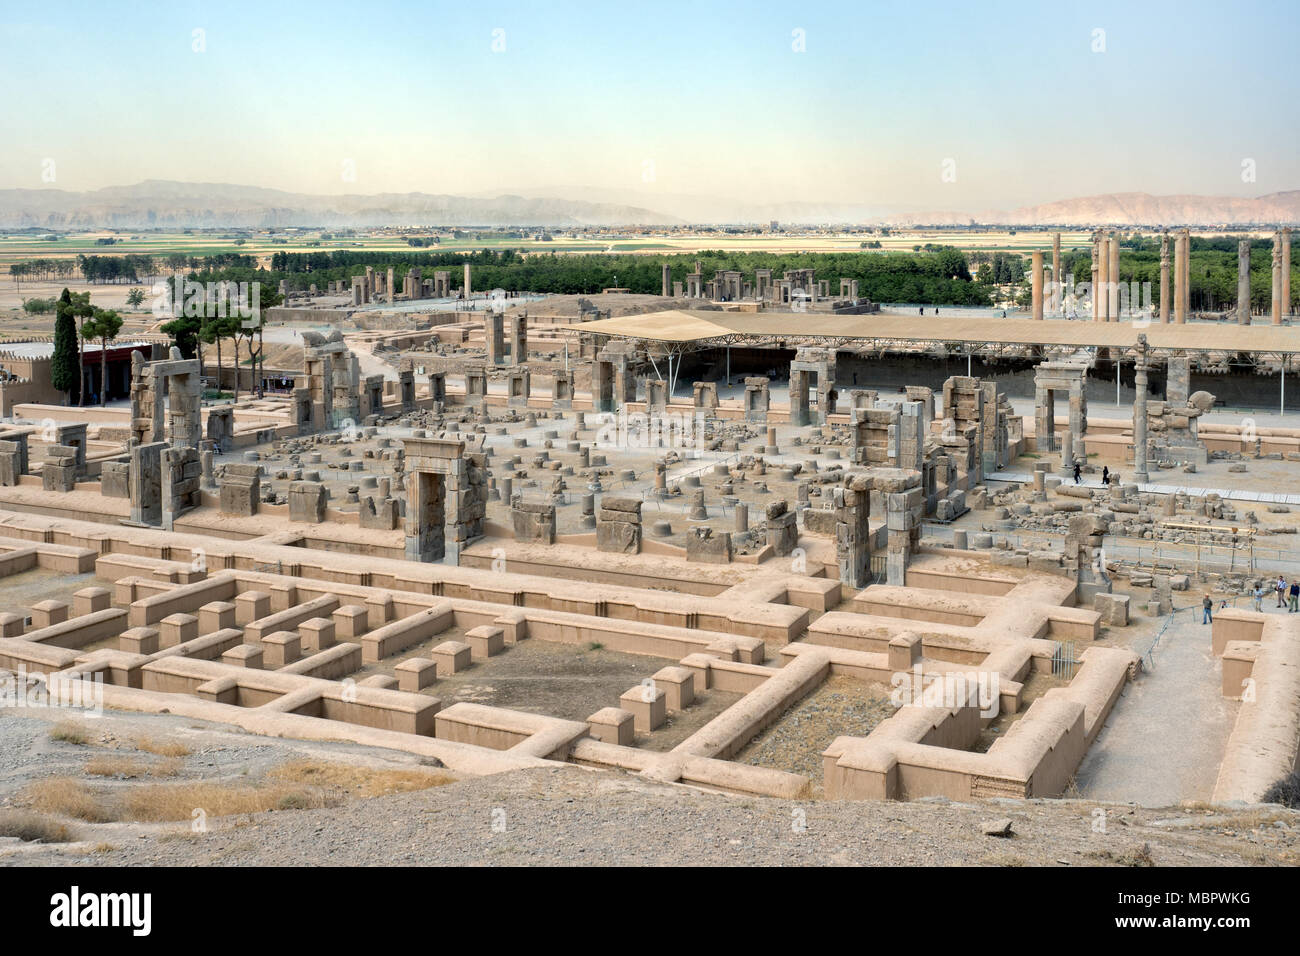 Elevated View Of The Ancient Ruins At Persepolis Iran Stock Photo Alamy